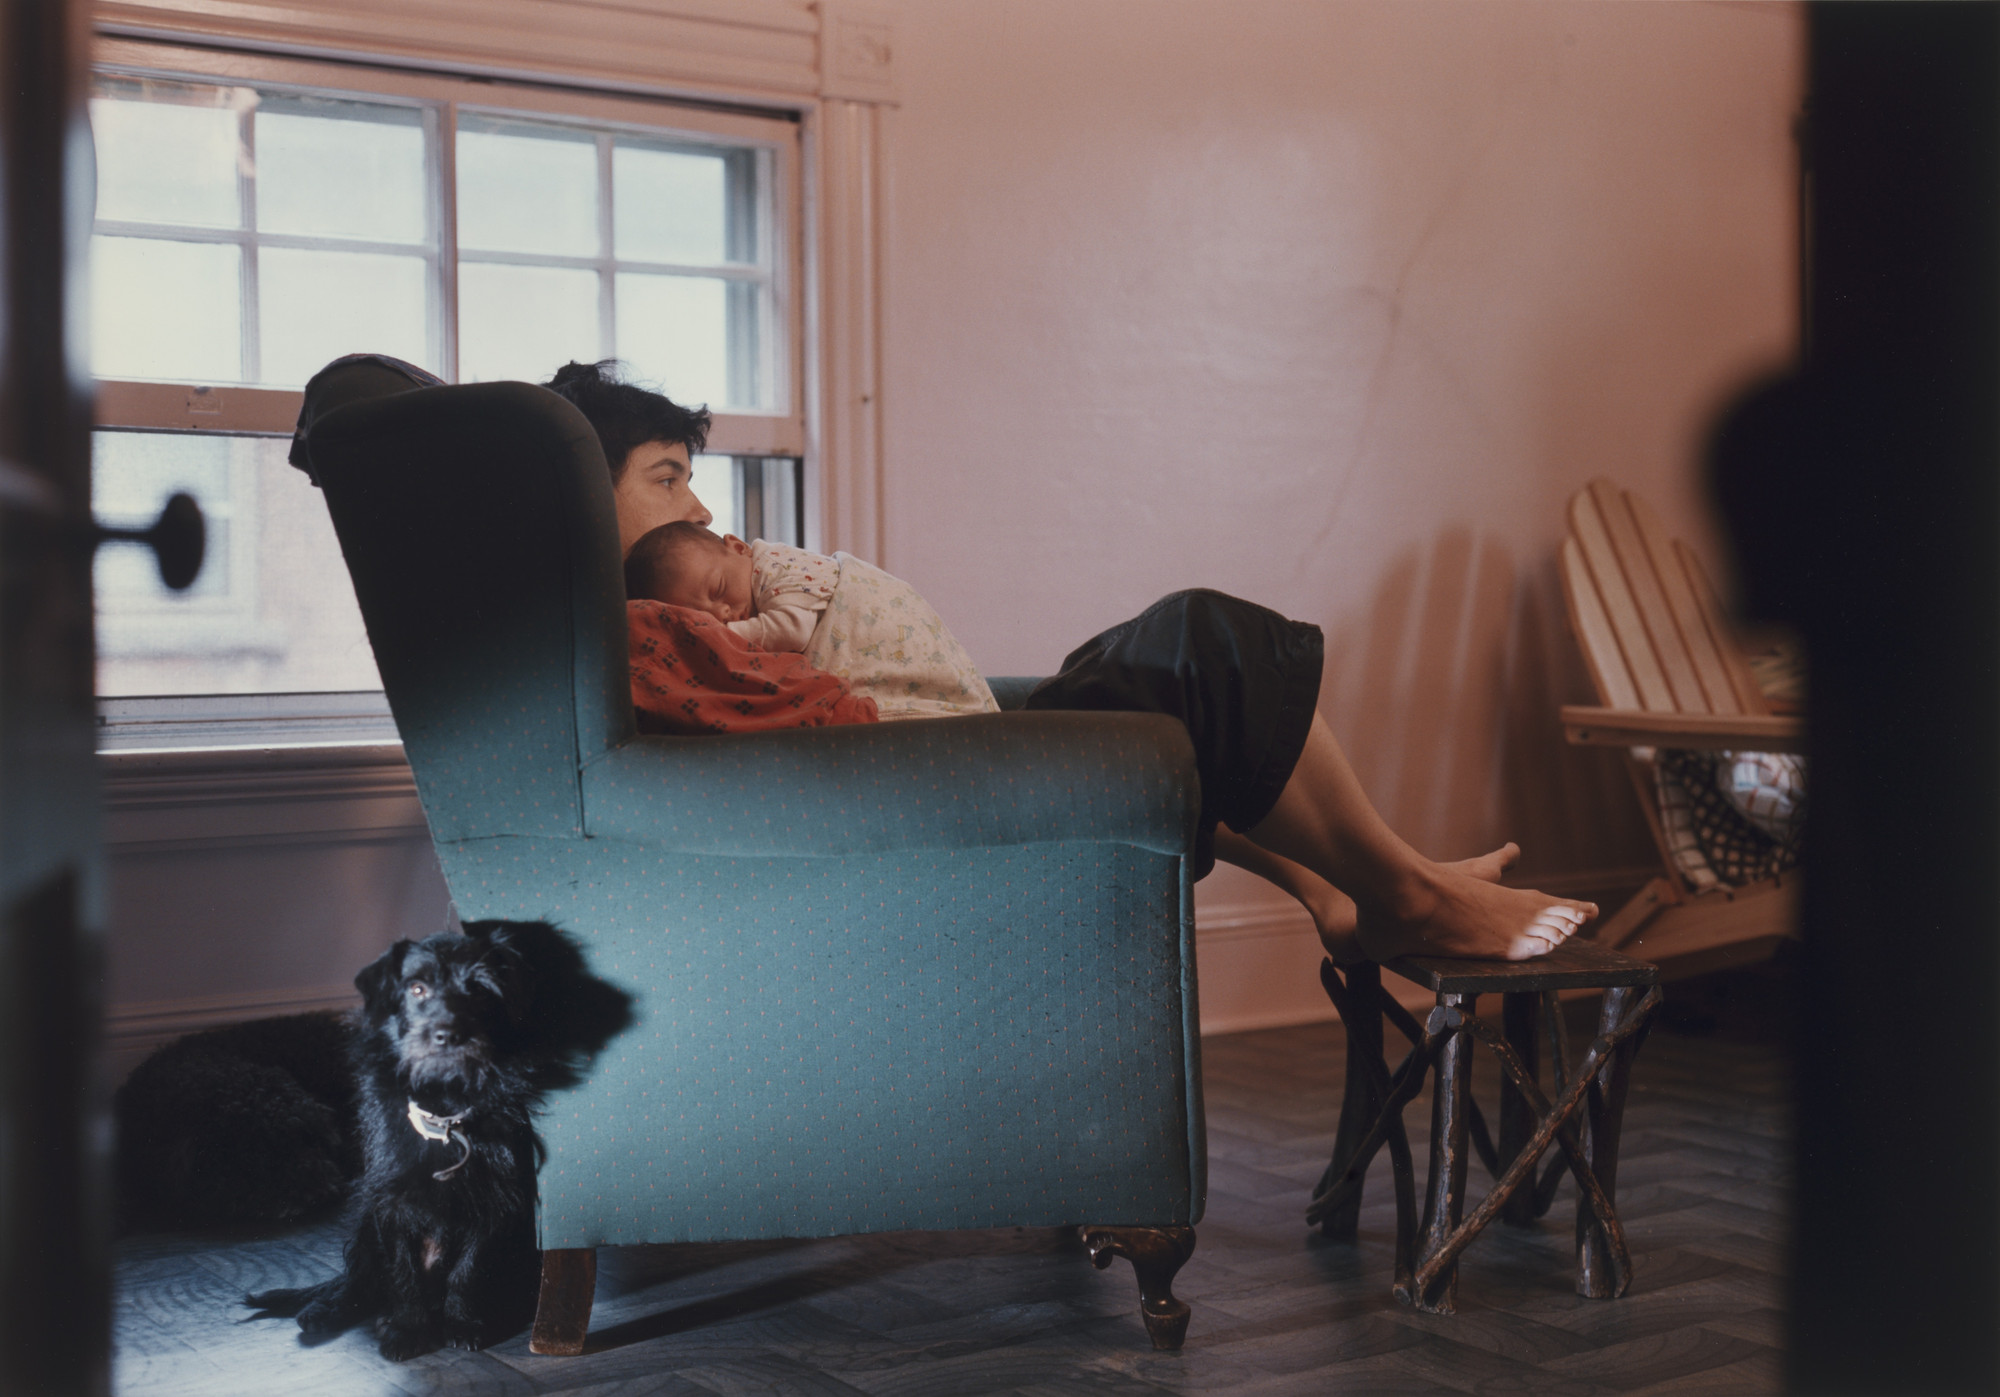 Philip-Lorca diCorcia. Auden, Emma and Dogs. 1989